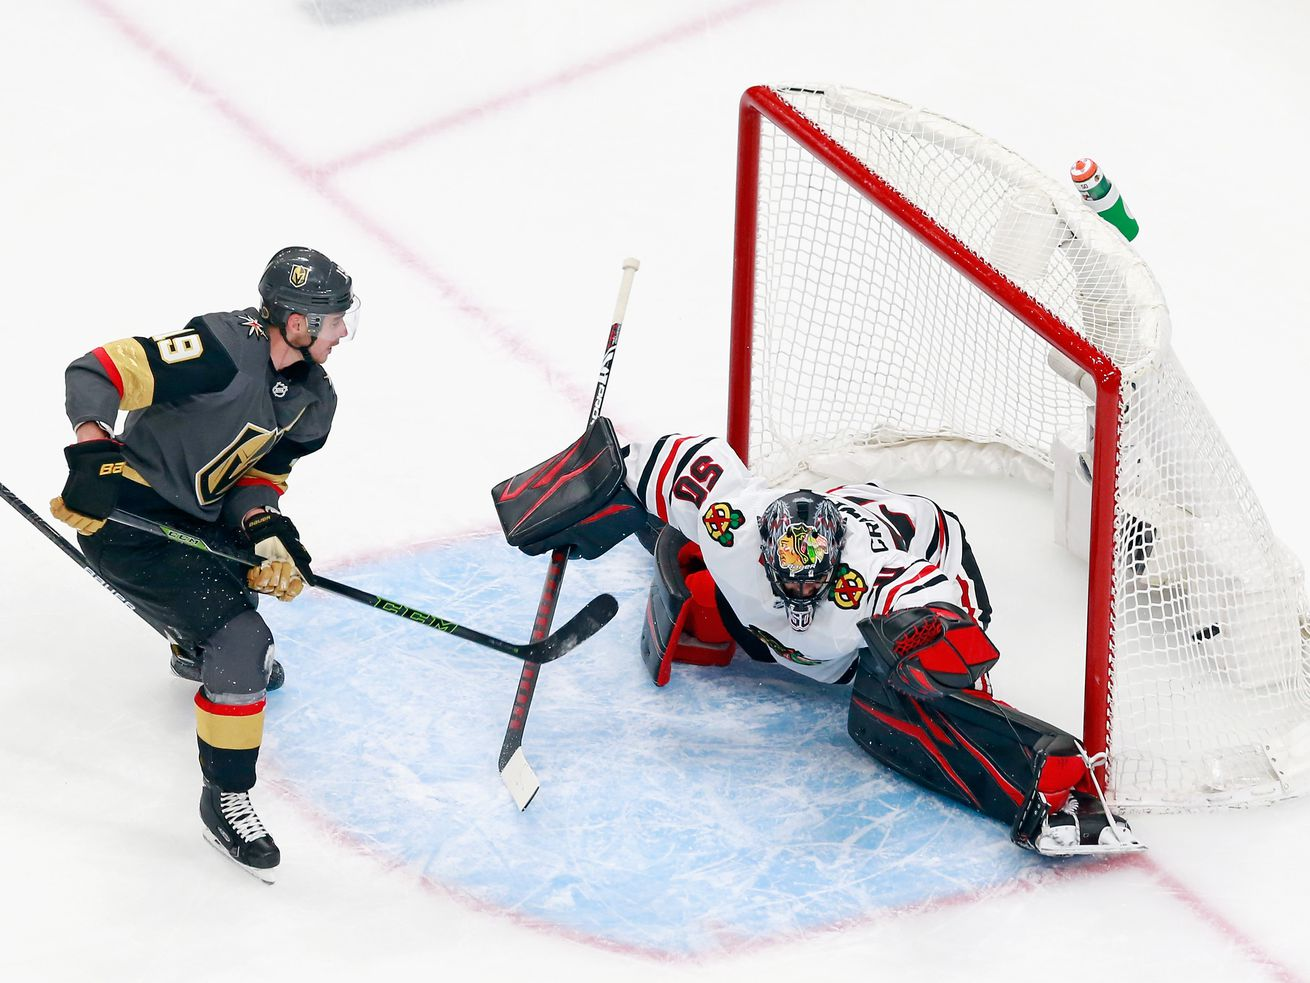 Golden Knights extend series lead over Blackhawks with Game 2 overtime win